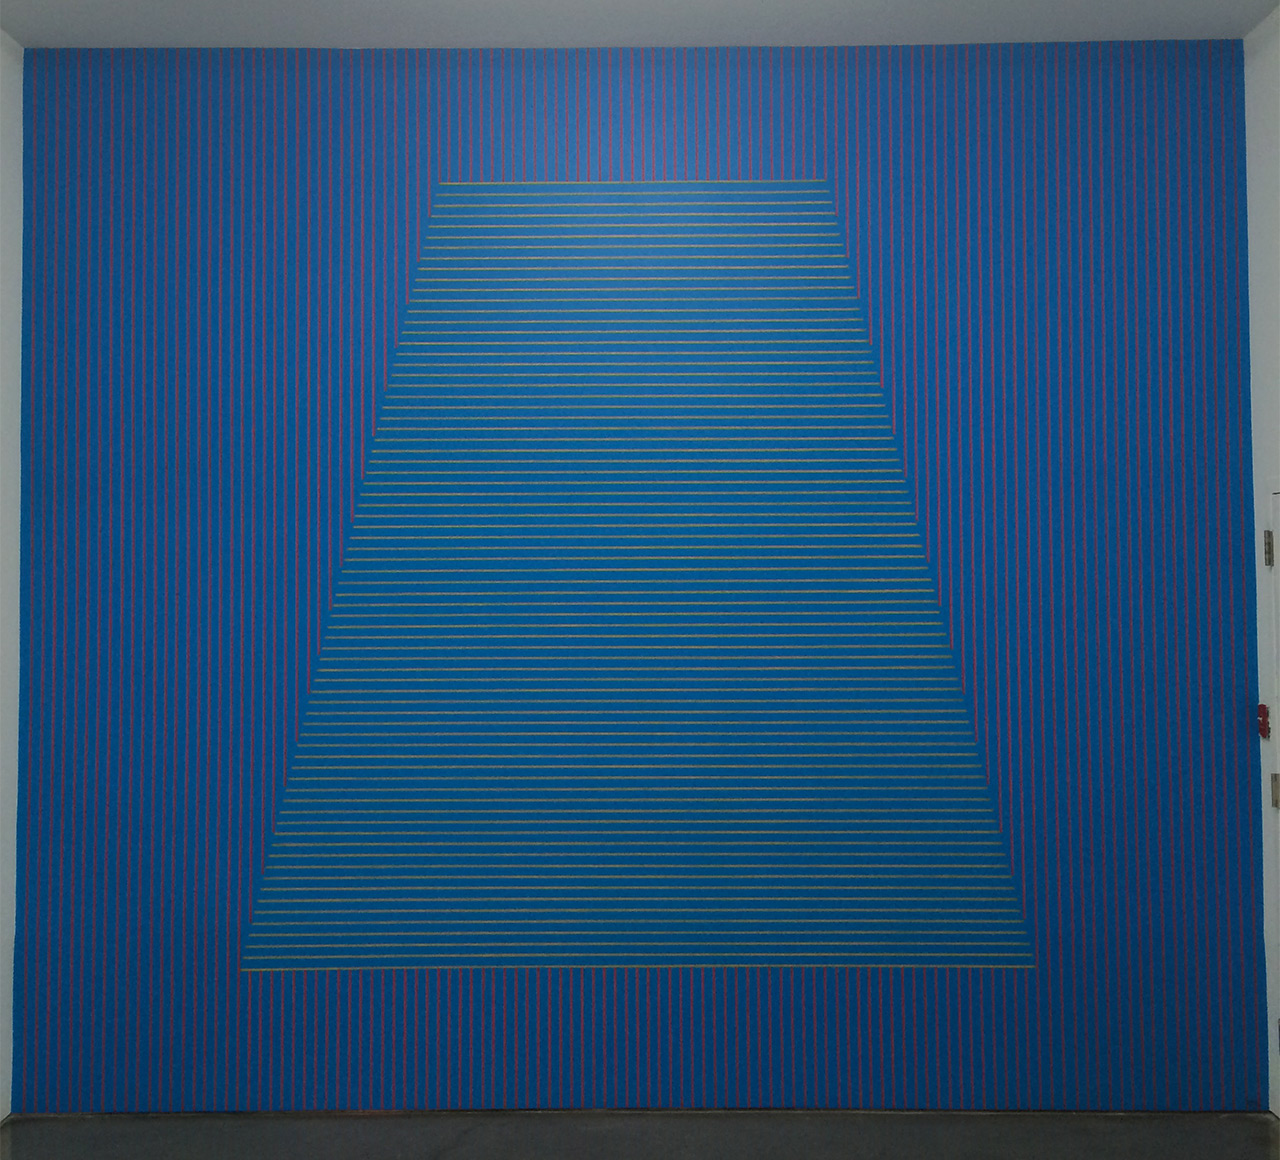 """Sol LeWitt, """"#333: On a blue wall, red vertical parallel lines, and in the center of the wall, a trapezoid within which are yellow horizontal parallel lines. The vertical lines do not enter the figure"""" (May 1980) at Gladstone Gallery"""